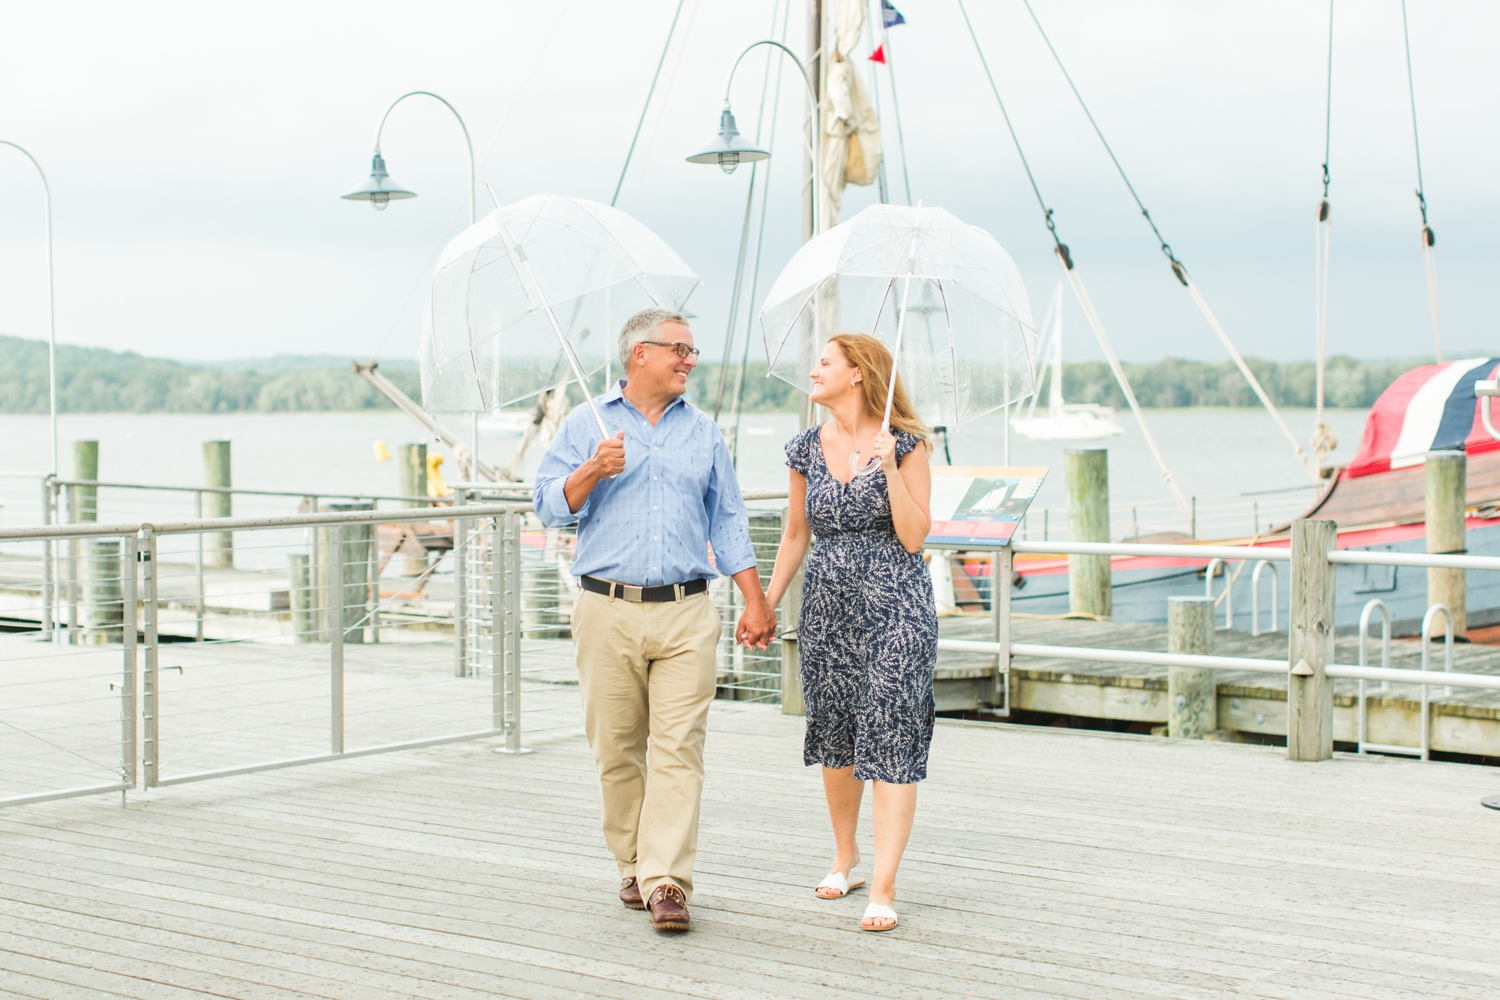 connecticut-river-museum-engagement-session-essex-wedding-photographer-shaina-lee-photography-photo